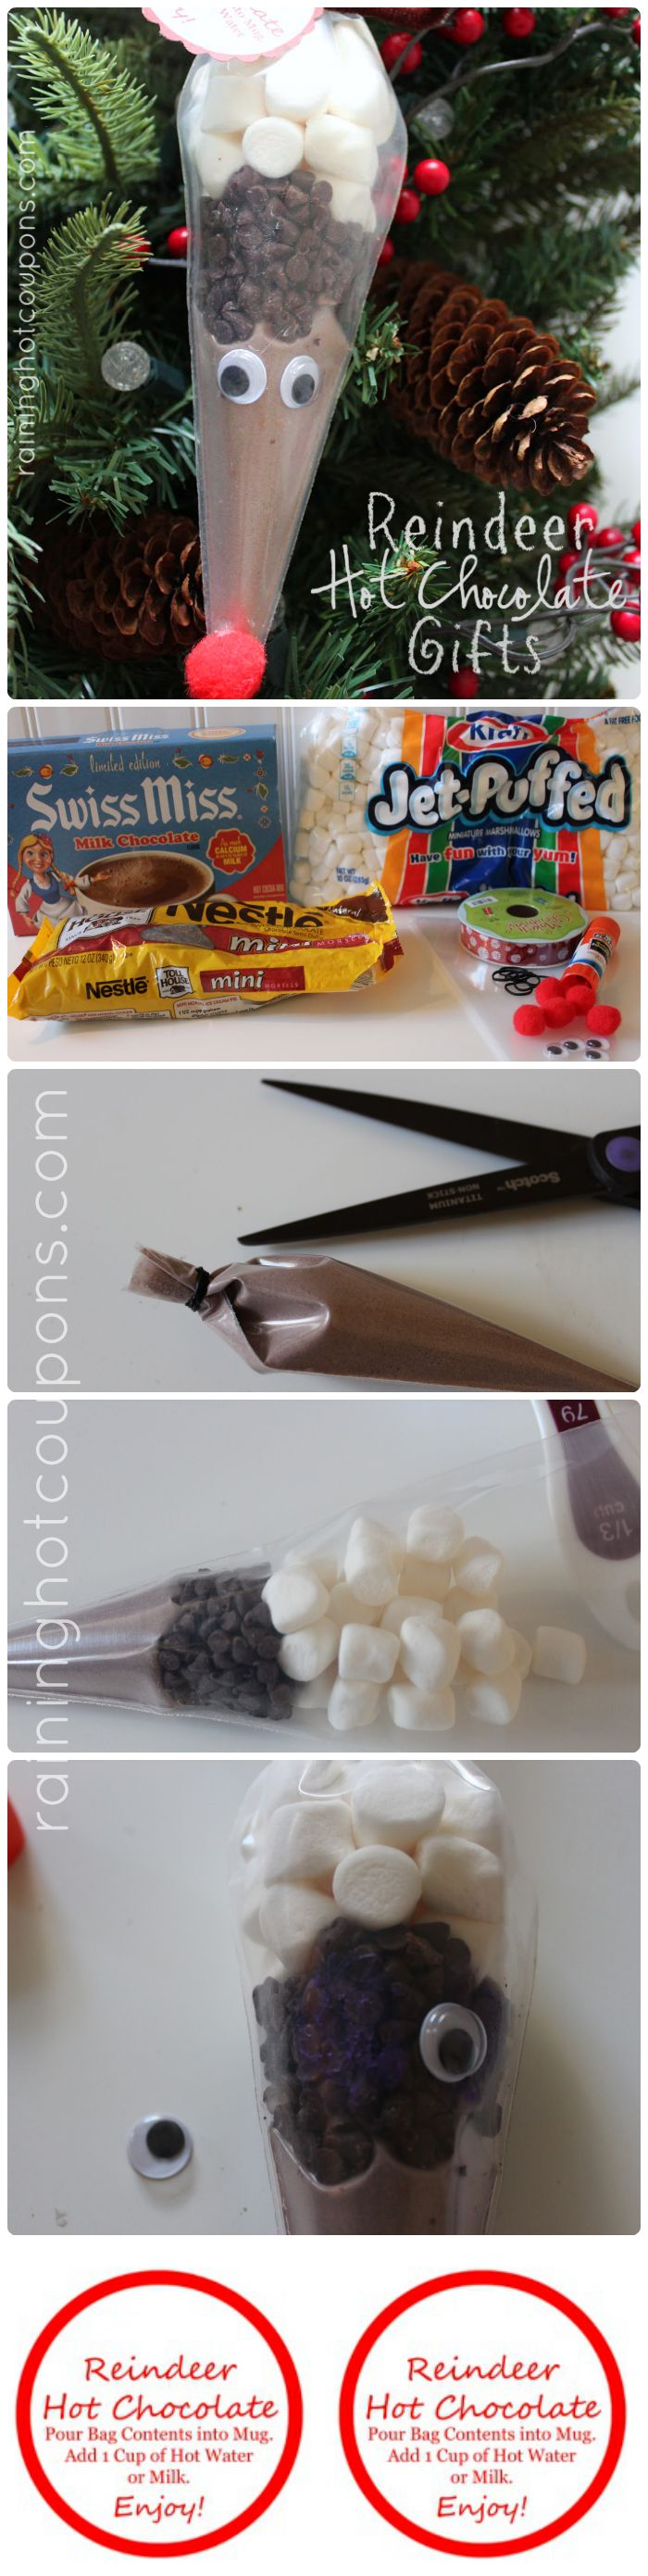 Reindeer Hot Chocolate Gifts + FREE Printable Gift Tag Labels! - Raining Hot Coupons